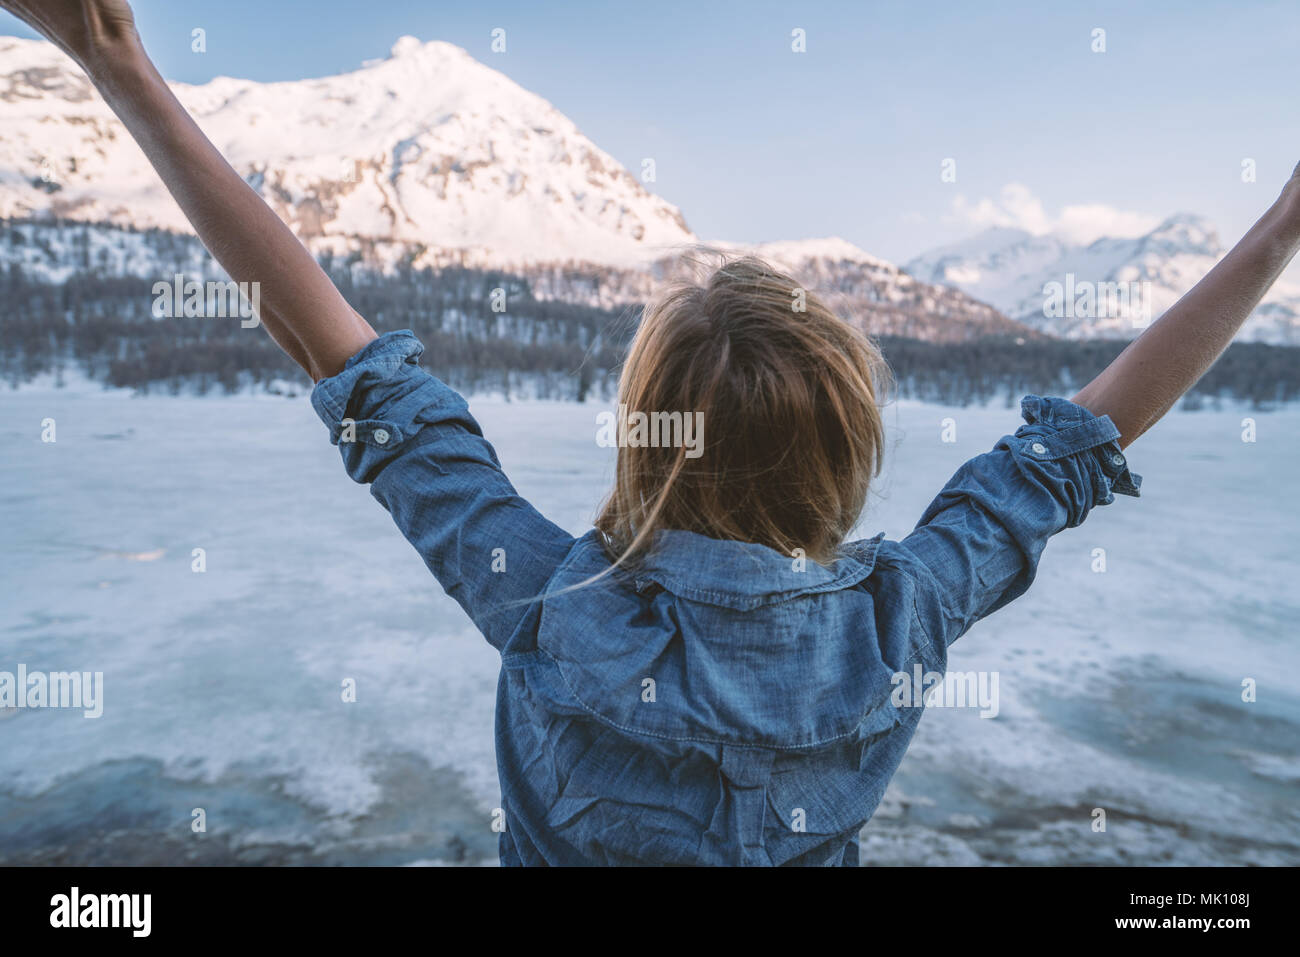 Young woman arms outstretched in nature, mountain landscape in Switzerland. People travel wellbeing freedom concept Stock Photo